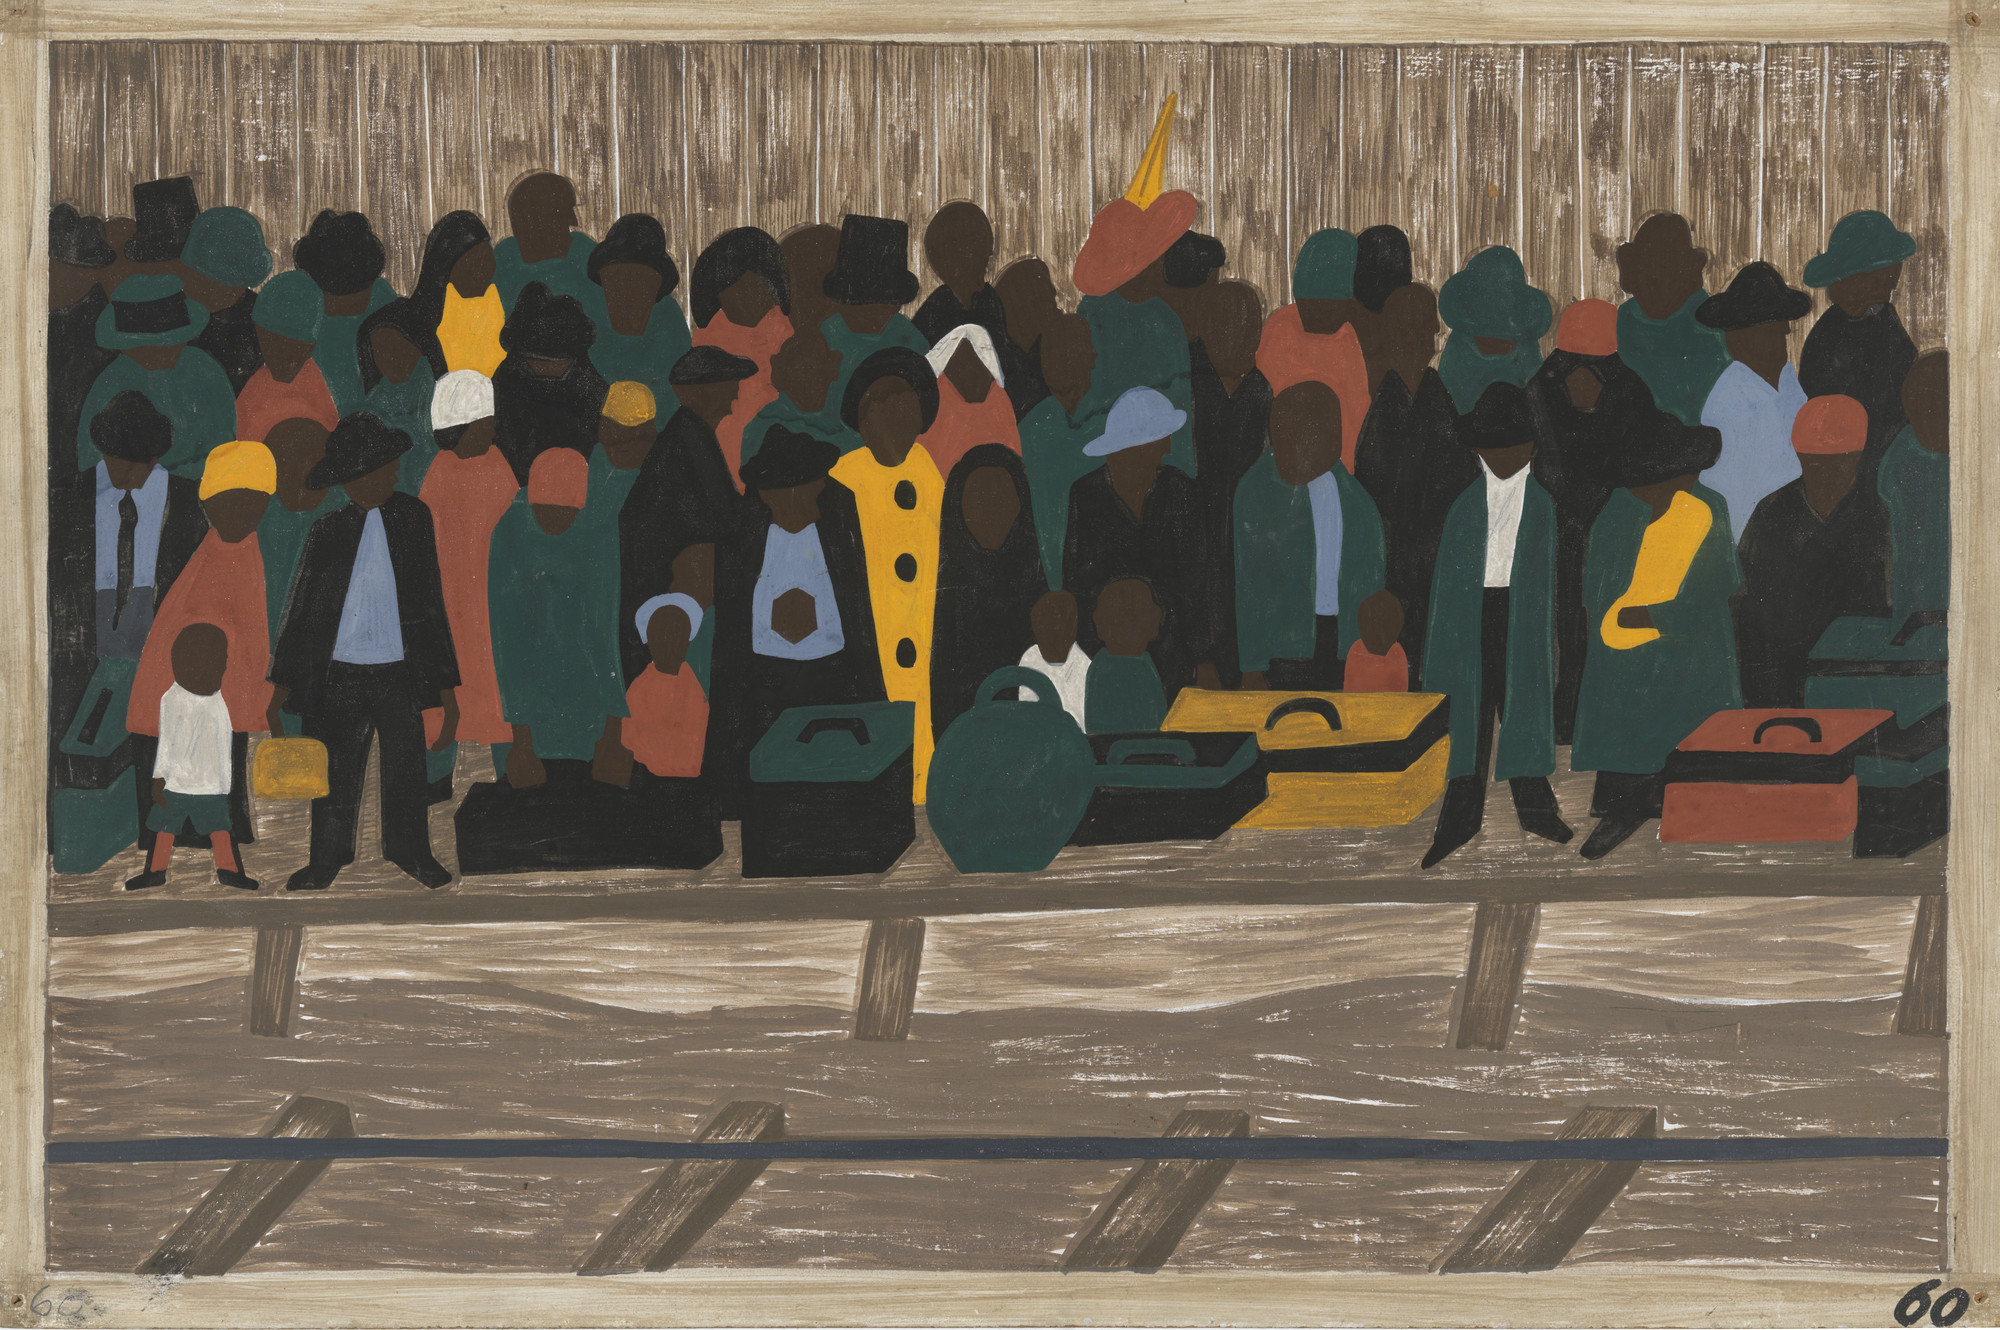 Jacob Lawrence. And the migrants kept coming. 1940-41